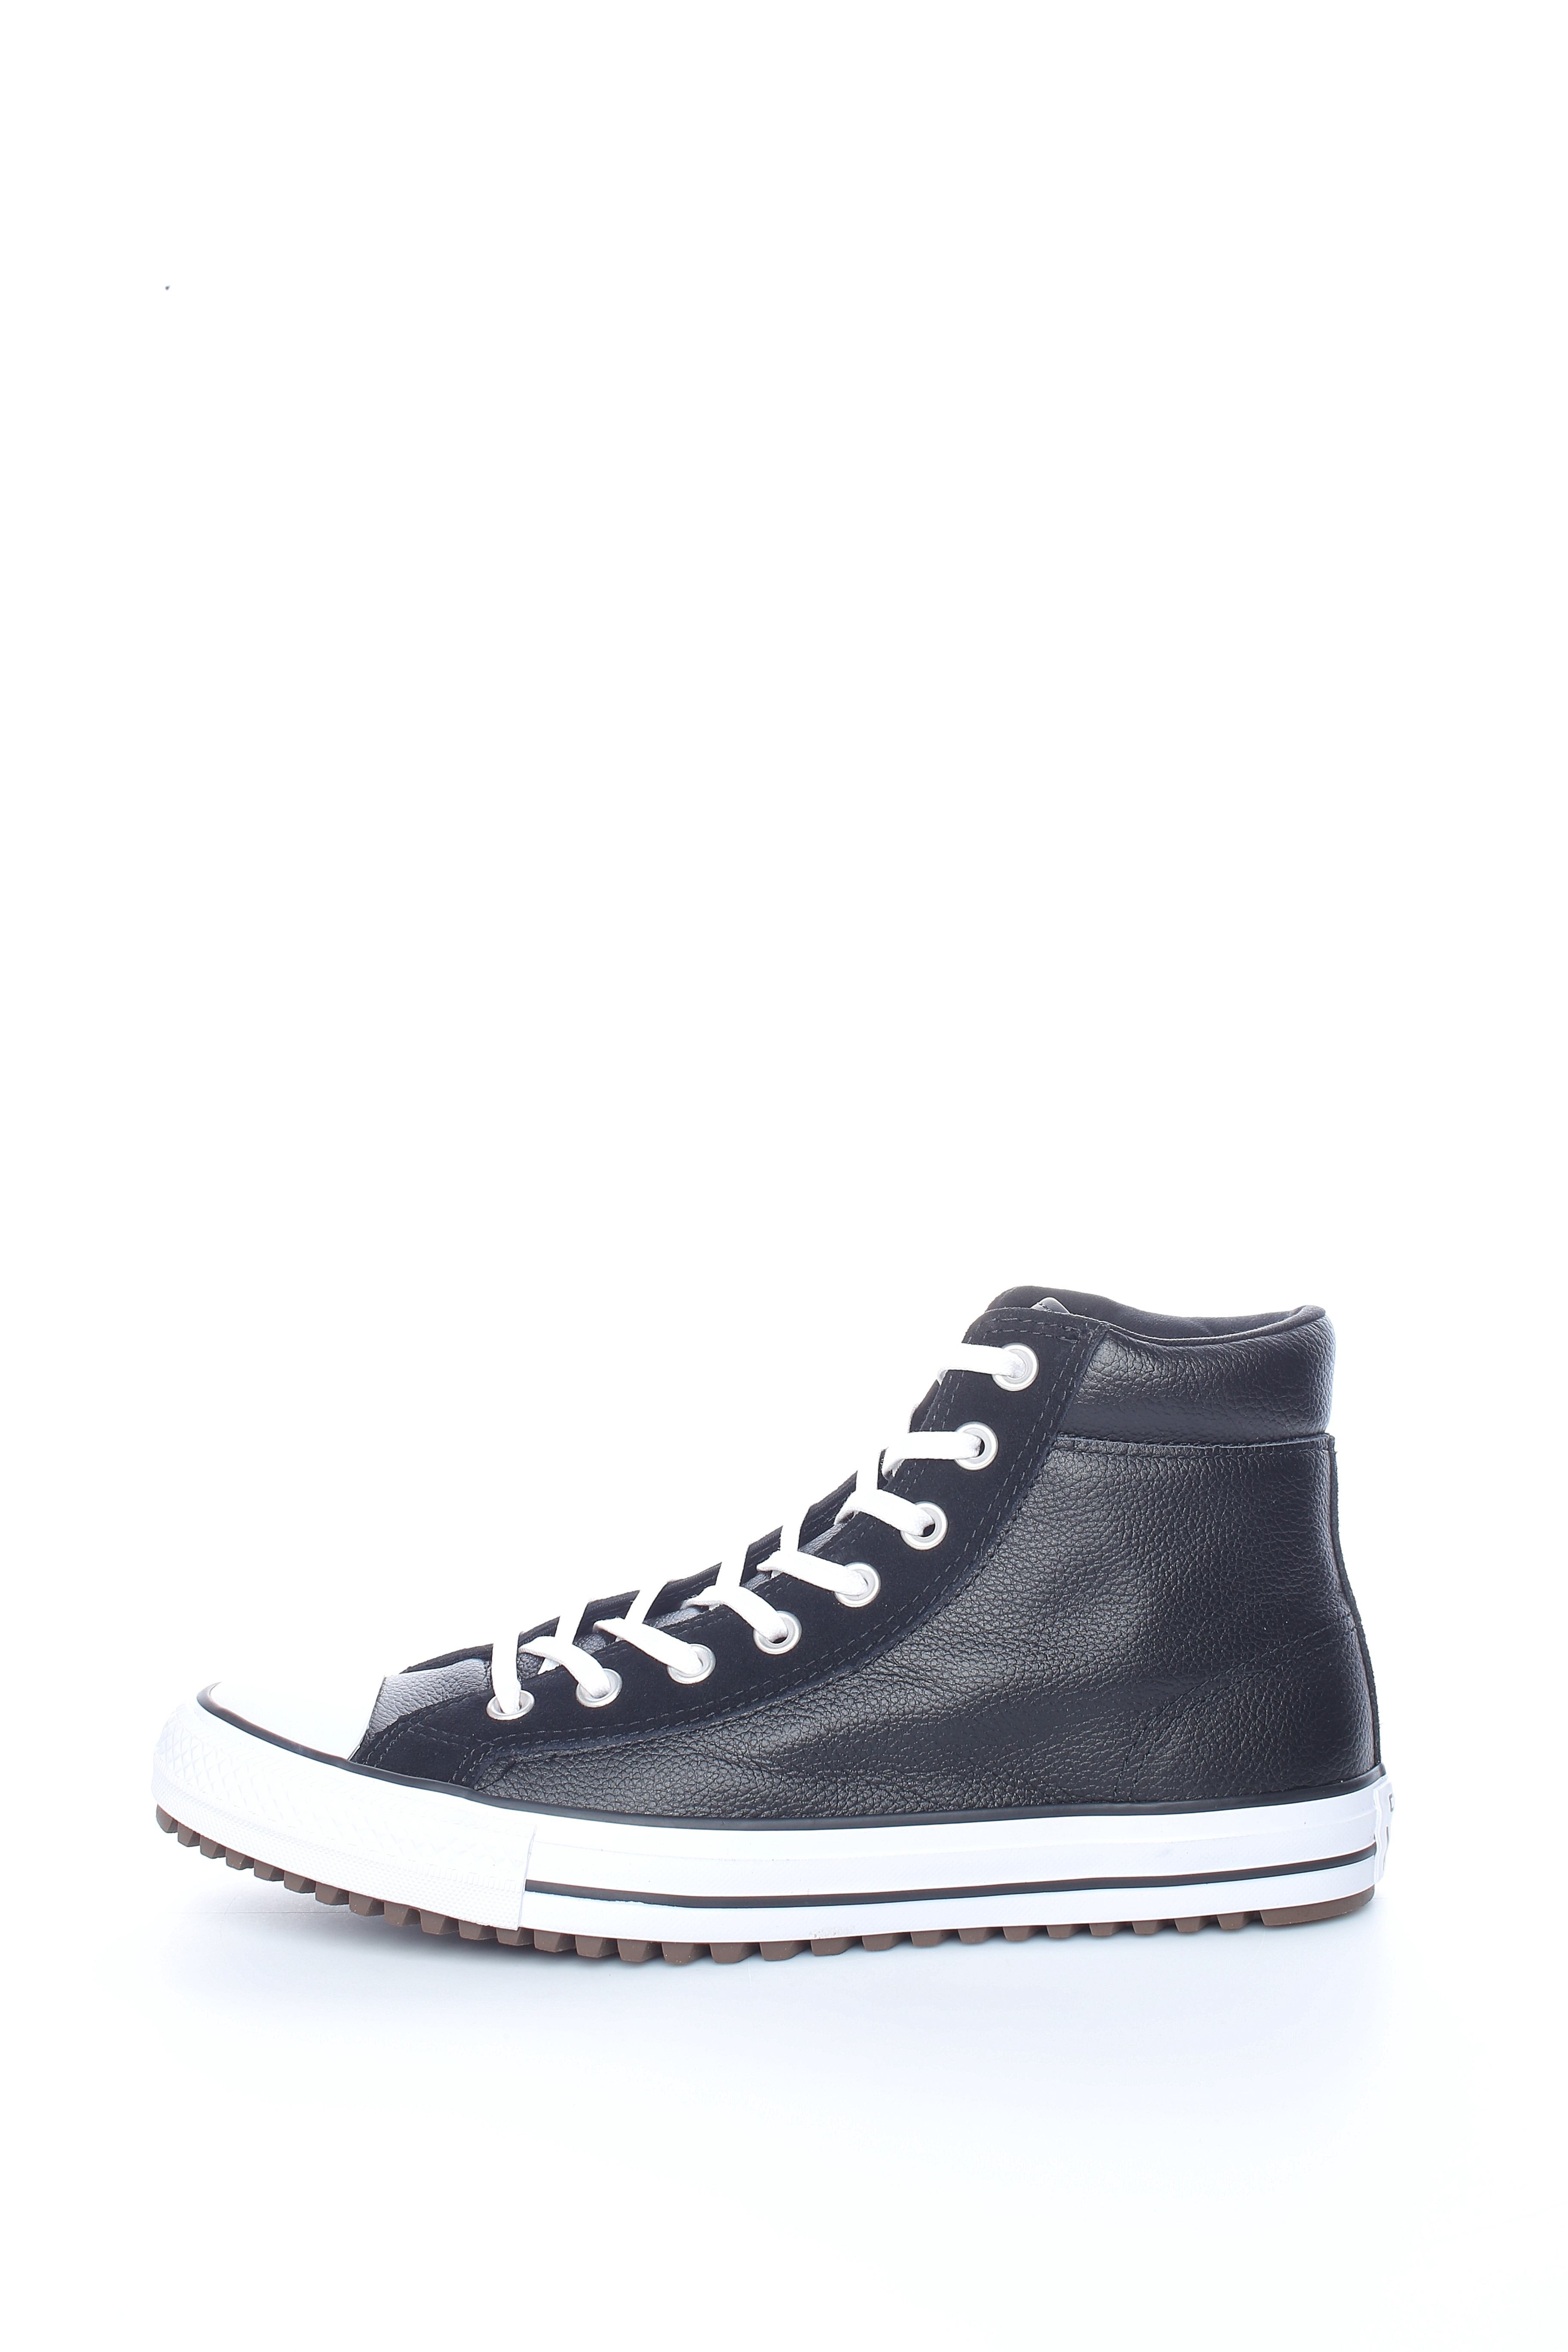 38aafe670e Factoryoutlet CONVERSE – Unisex αθλητικά μποτάκια Chuck Taylor All Star  Boot μαύρα